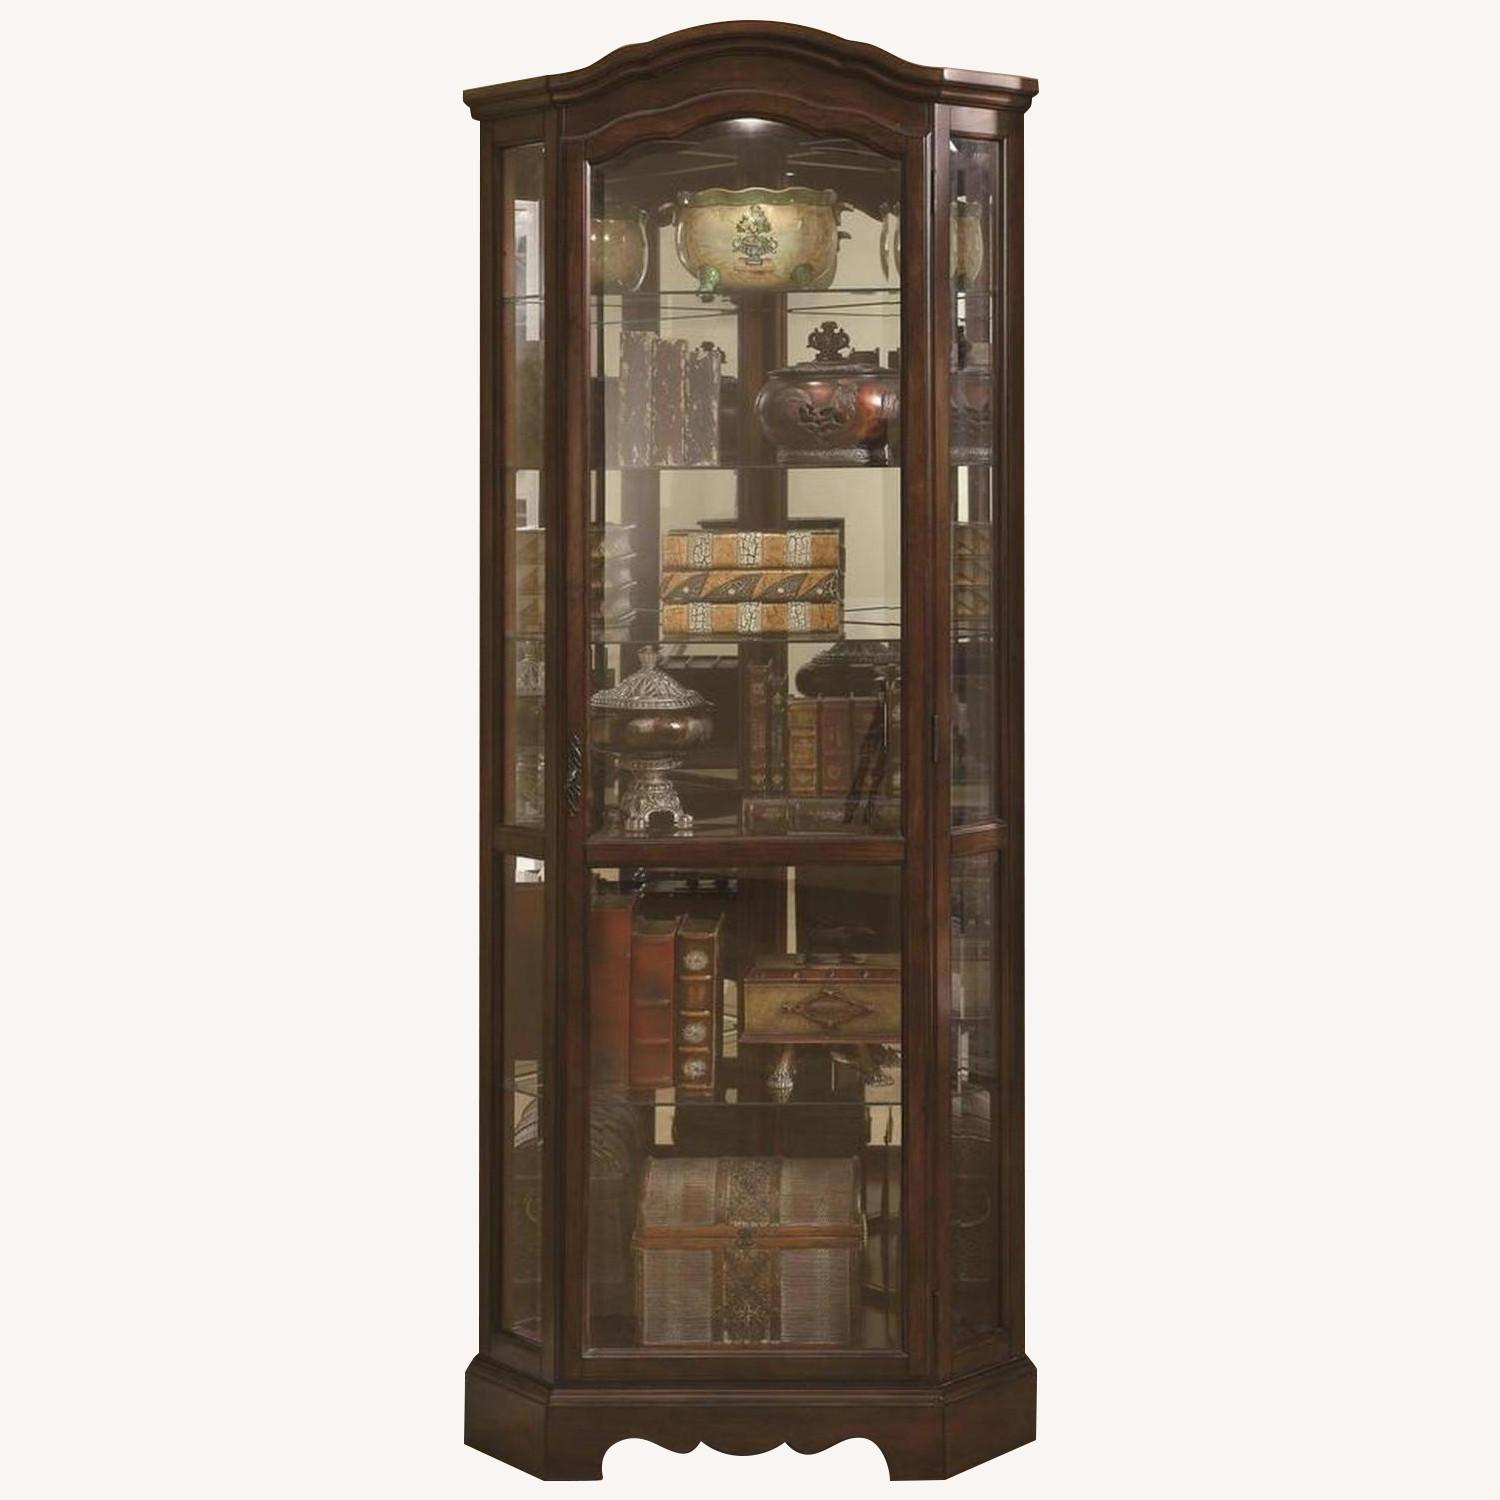 Traditional Corner Curio Cabinet in Burnished Brown Finish - image-0